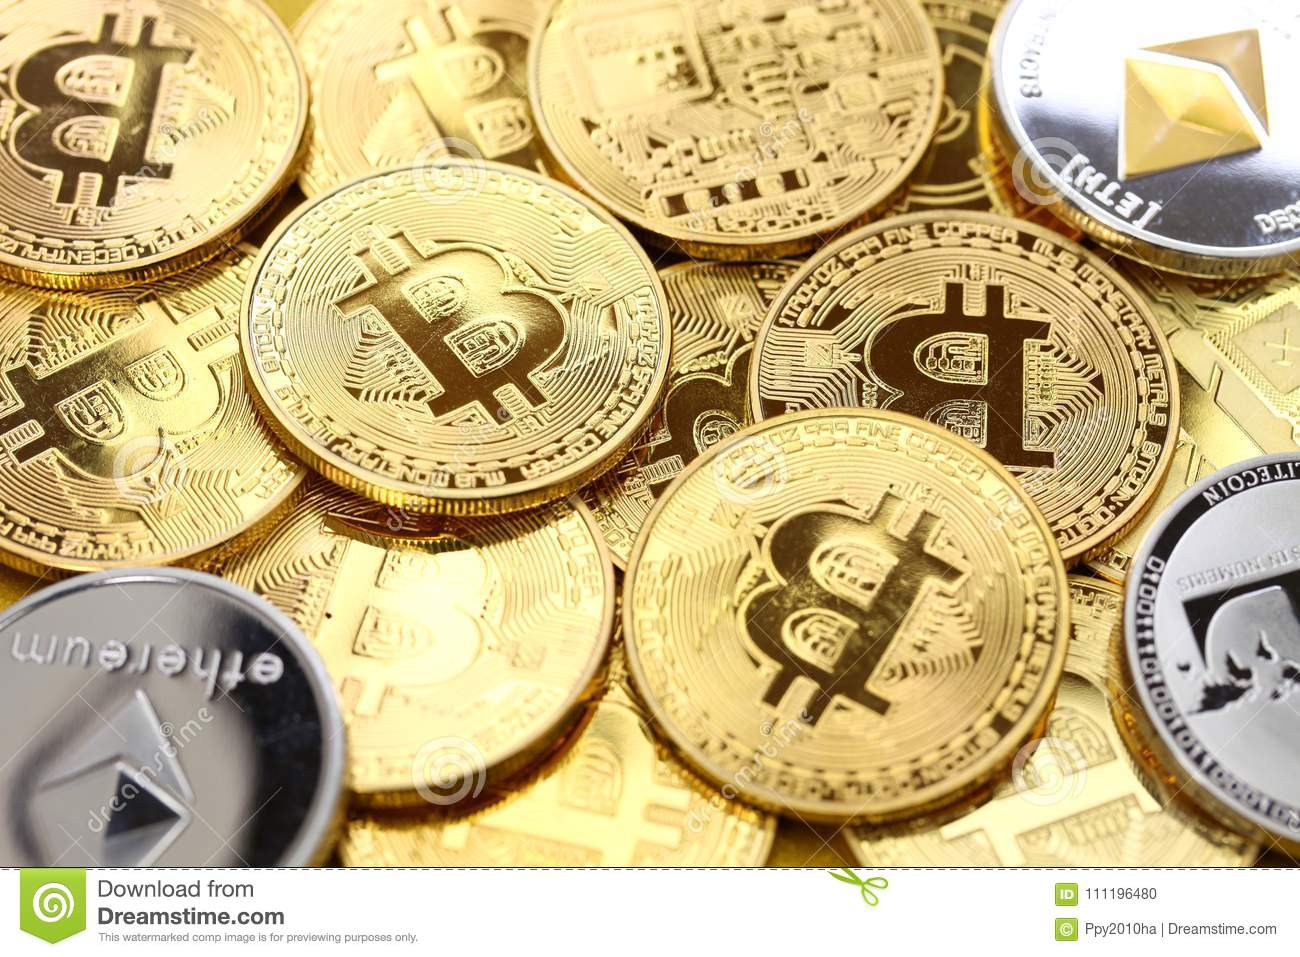 Types of crypto currency stocks worlds sport betting